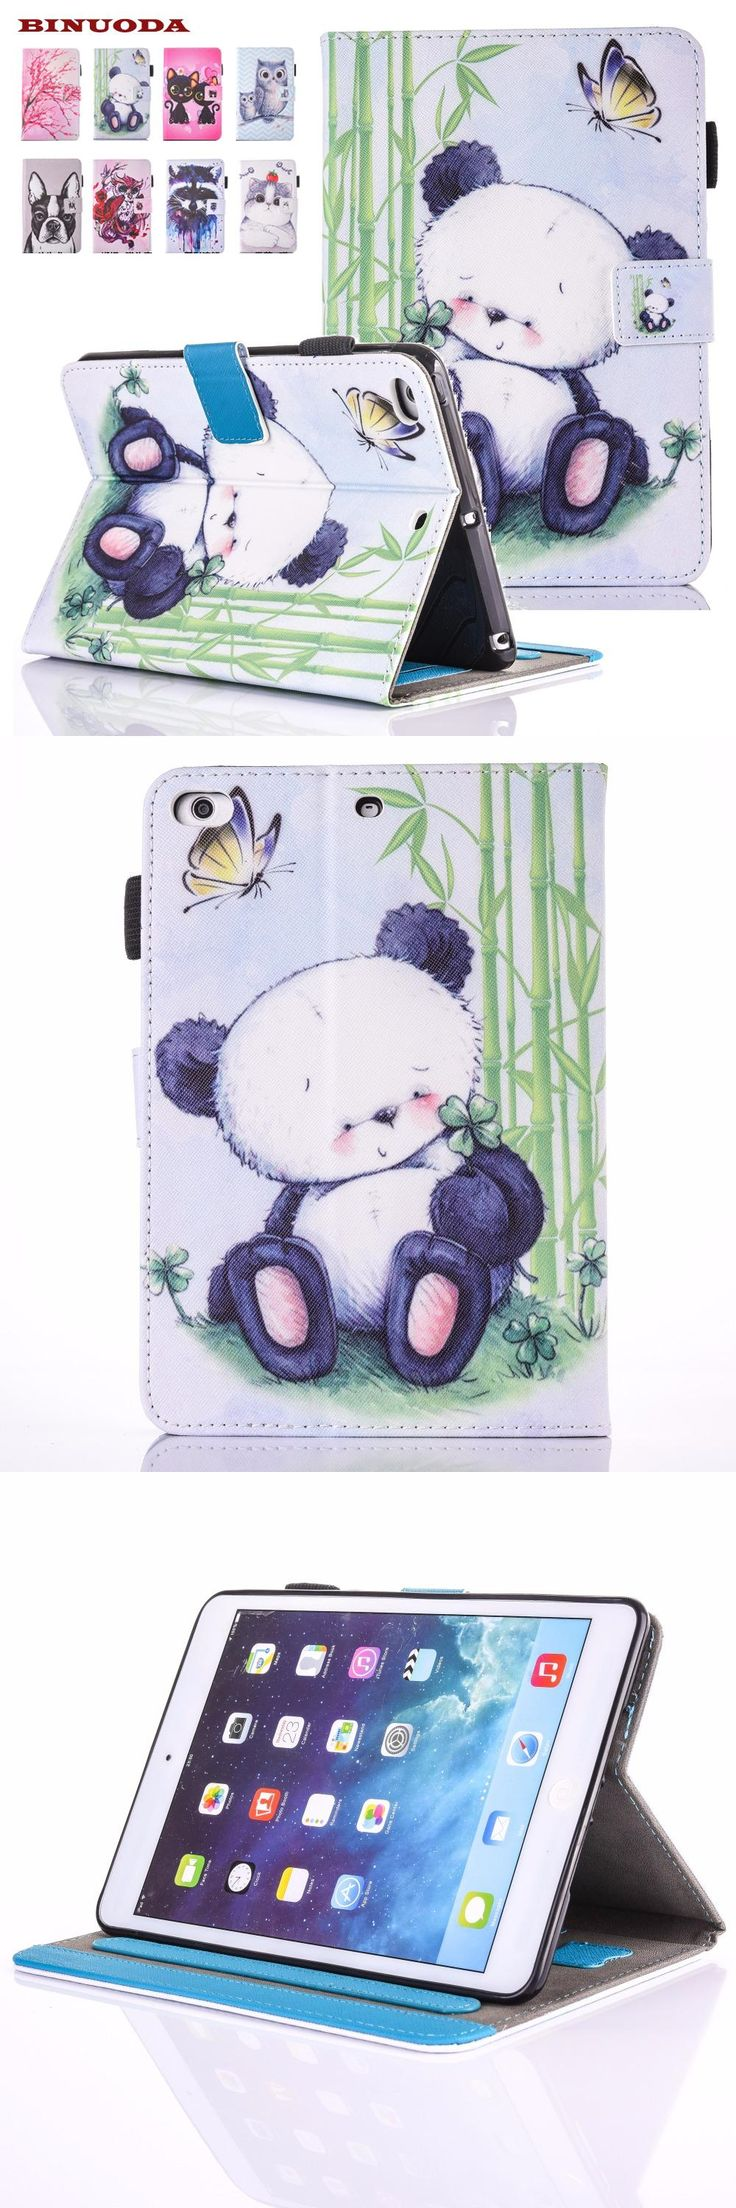 [Visit to Buy] For iPad 9.7 2017 Cover Case Cute Giant Panda PU Leather Folio Flip Smart Stand Wallet Case for New iPad 9.7 2017 Release Tablet #Advertisement